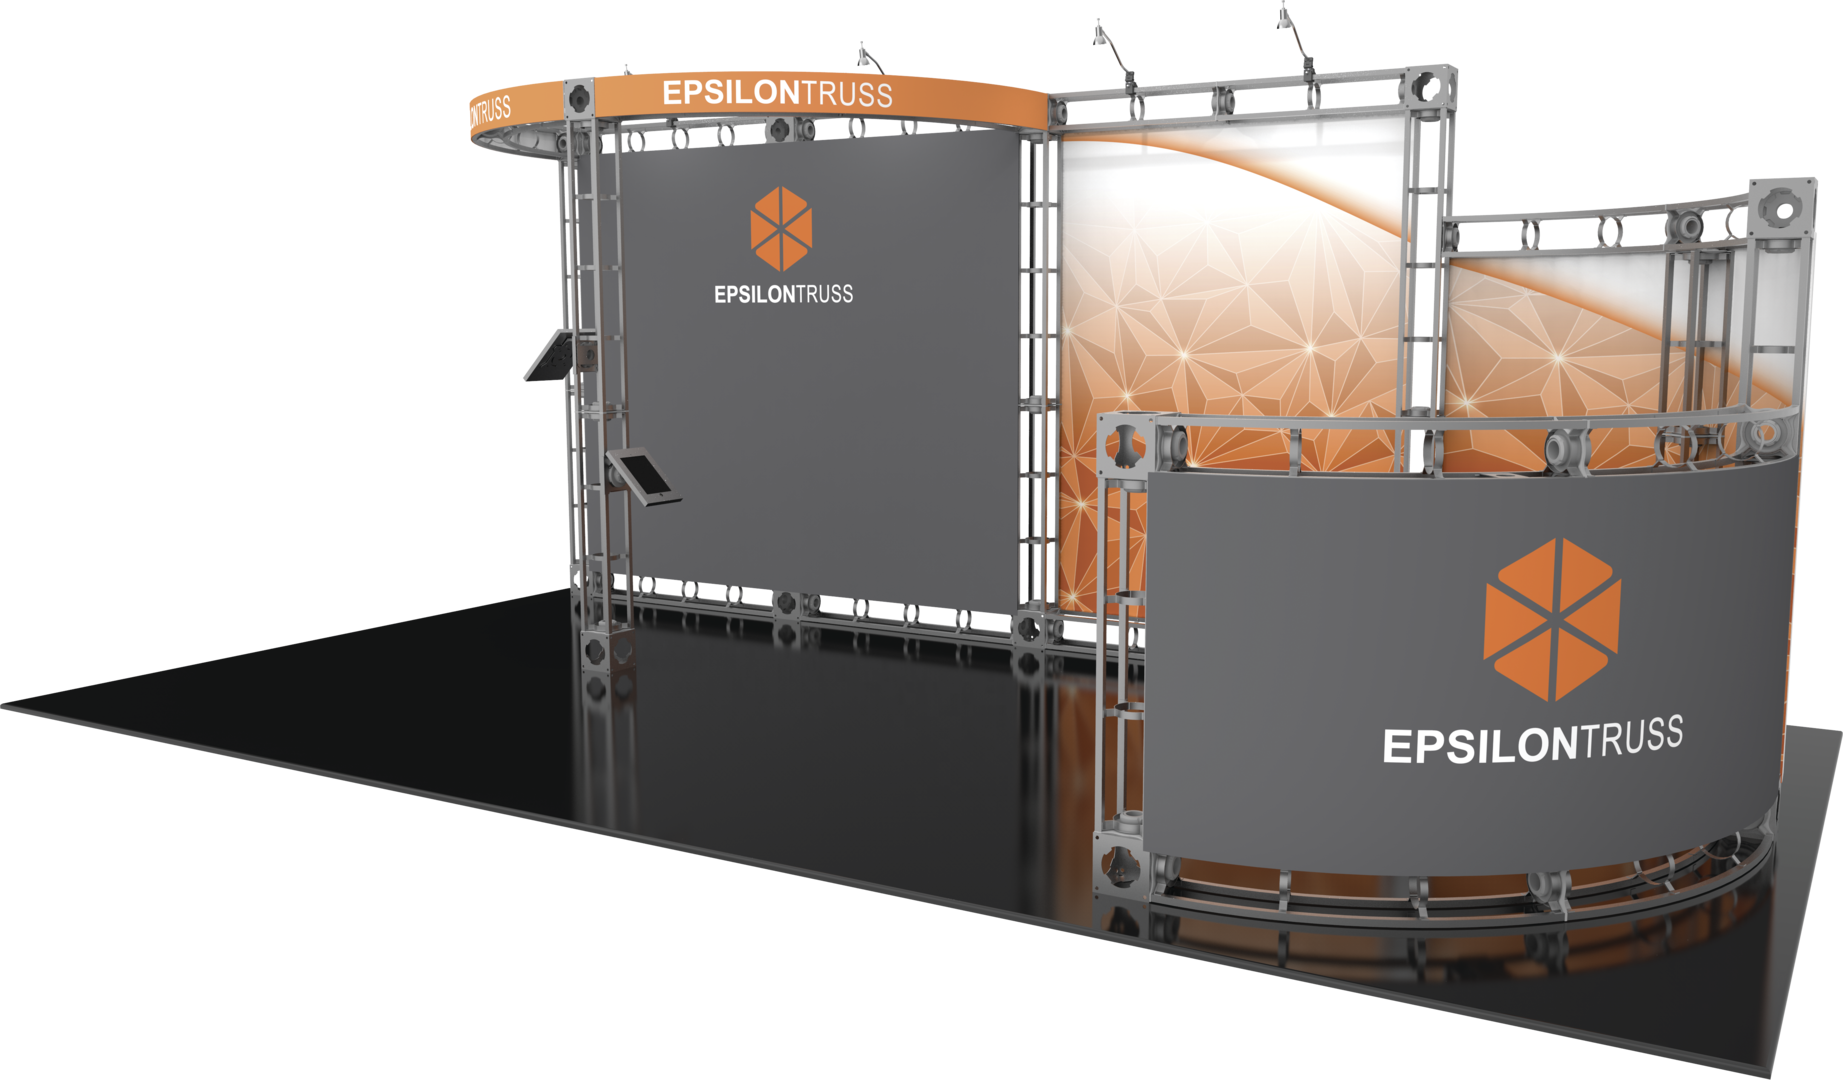 Exhibit logistics epsilon orbital express truss 20ft for Express modular pricing